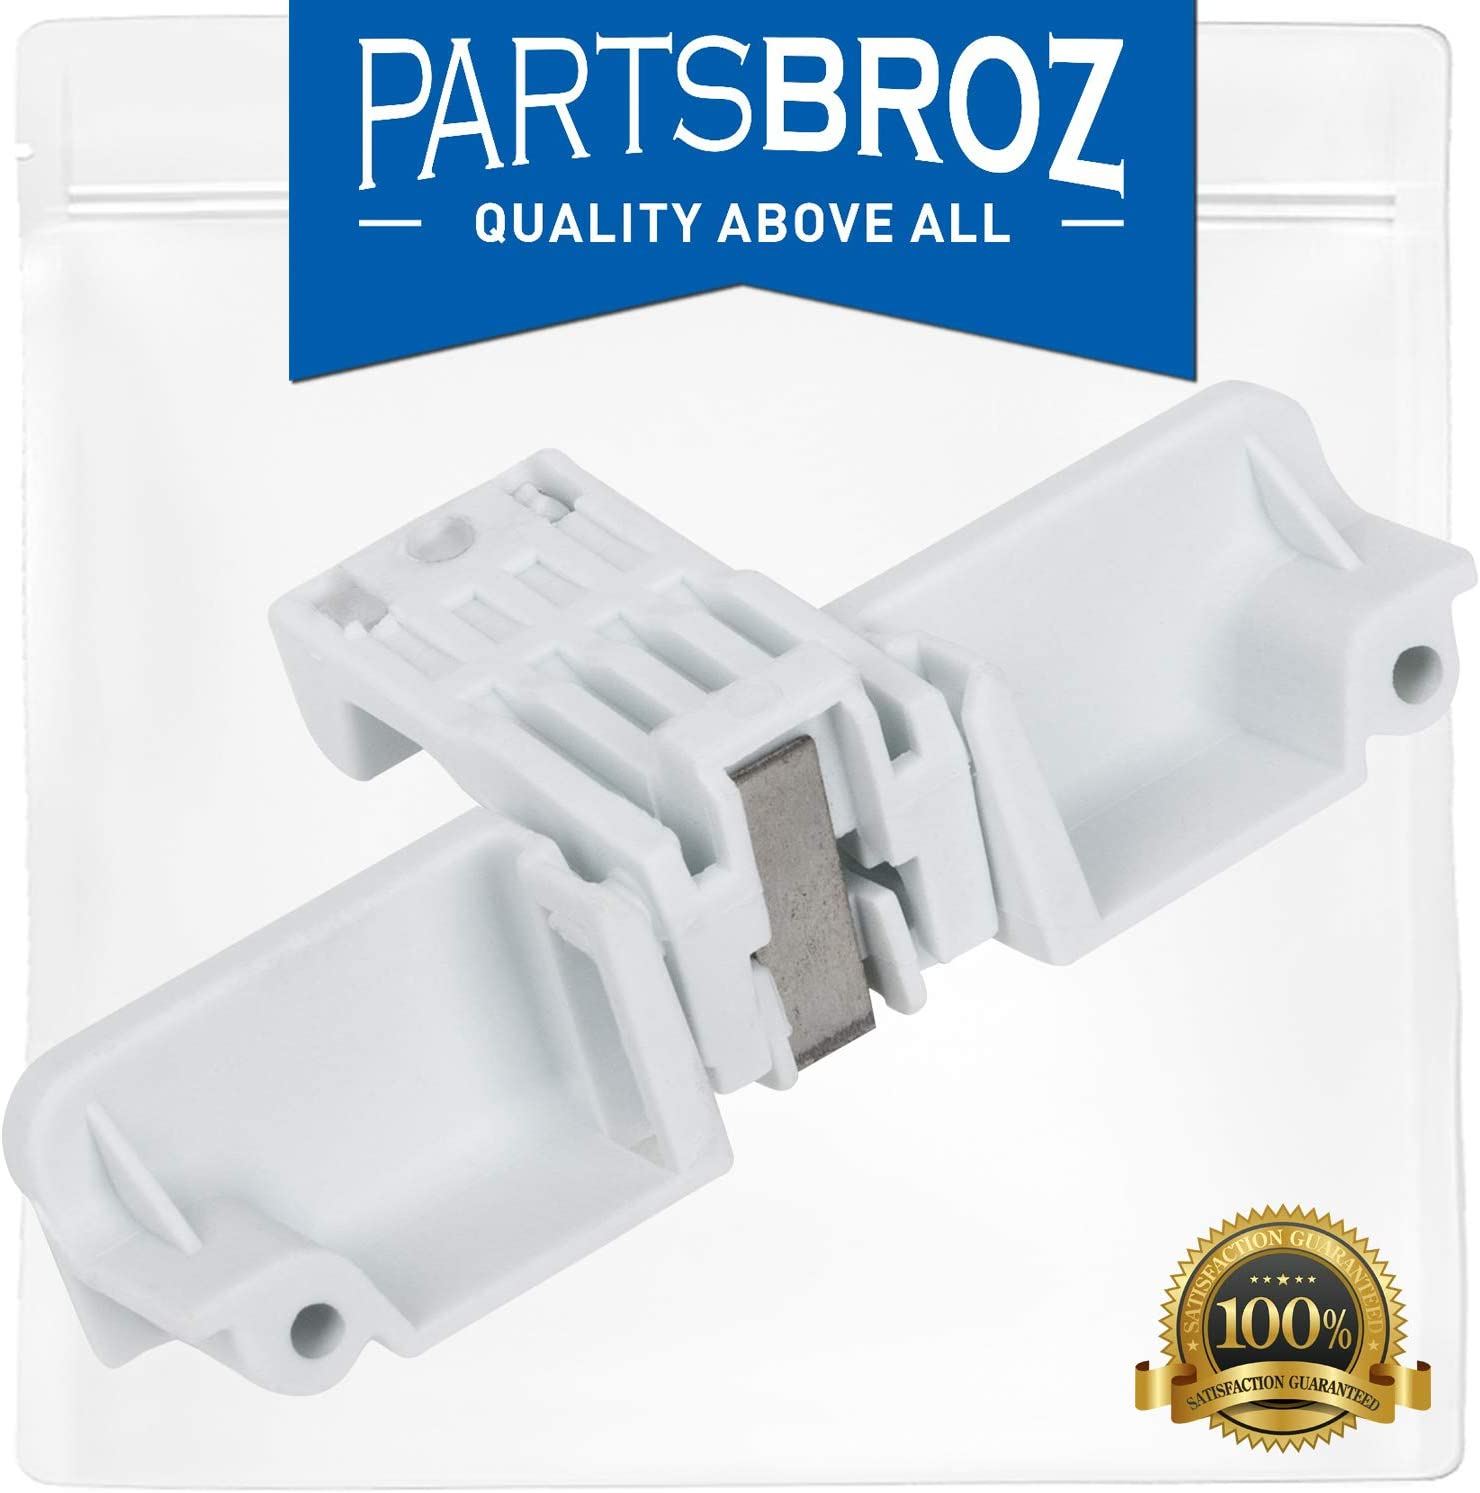 W10240513 Lid Switch Strike by PartsBroz - Compatible with Whirlpool Washing Machines - Replaces WPW10240513, AP6017583, PS11750882, WPW10240513VP